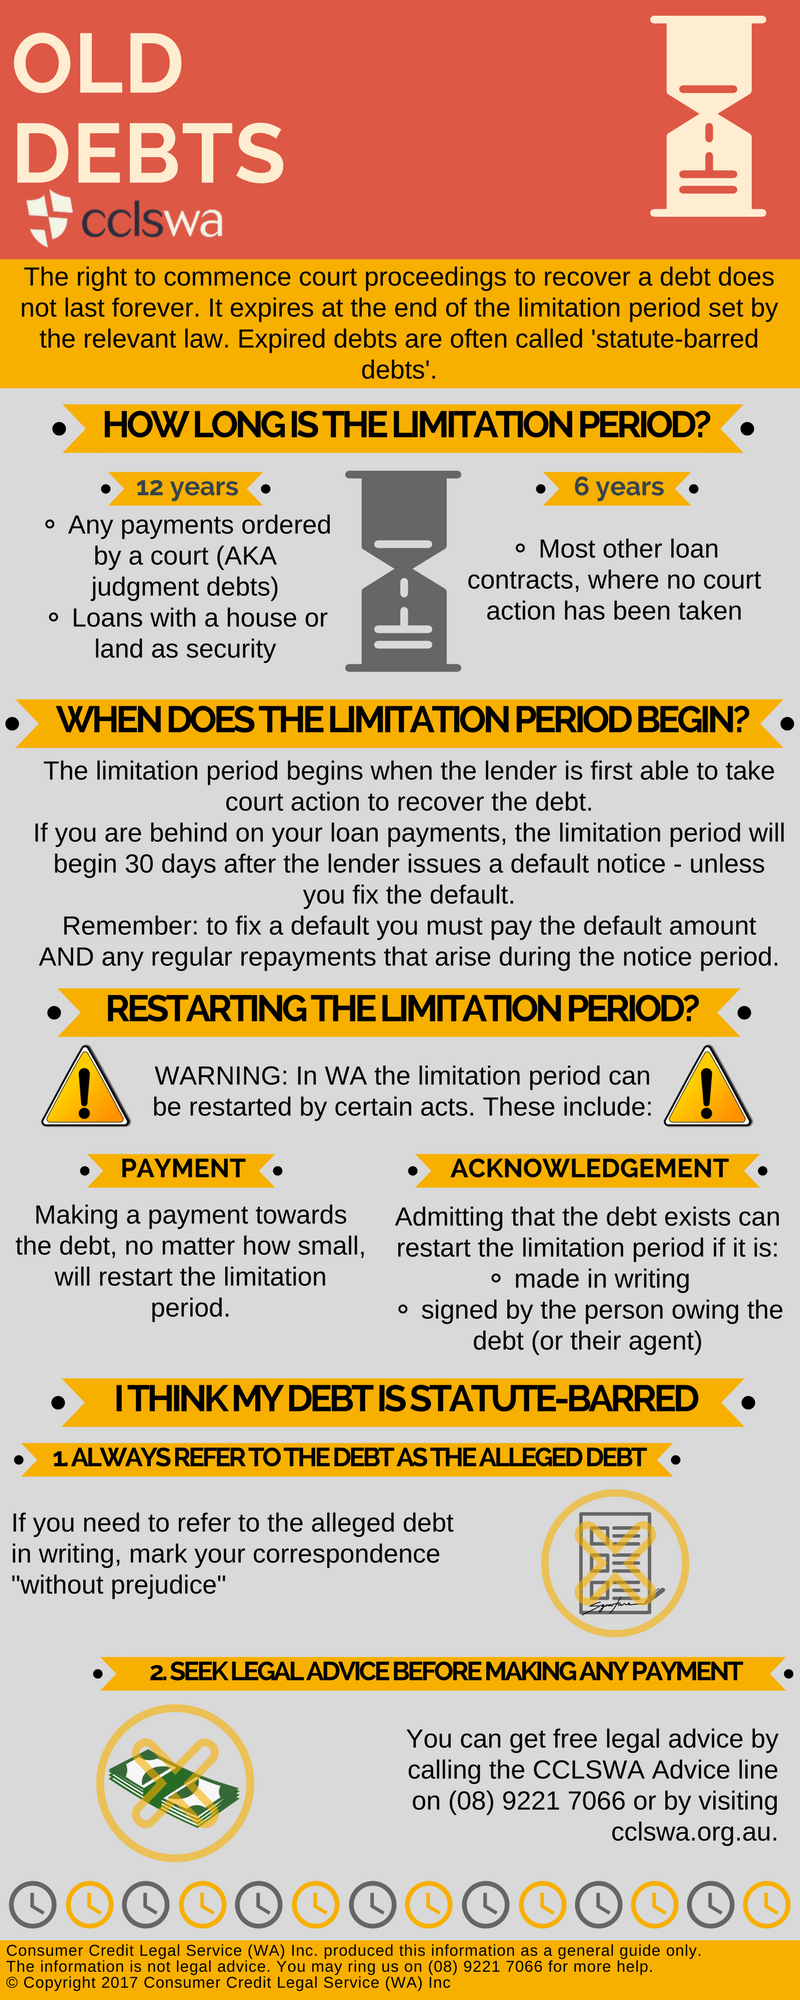 Old Debts Infographic